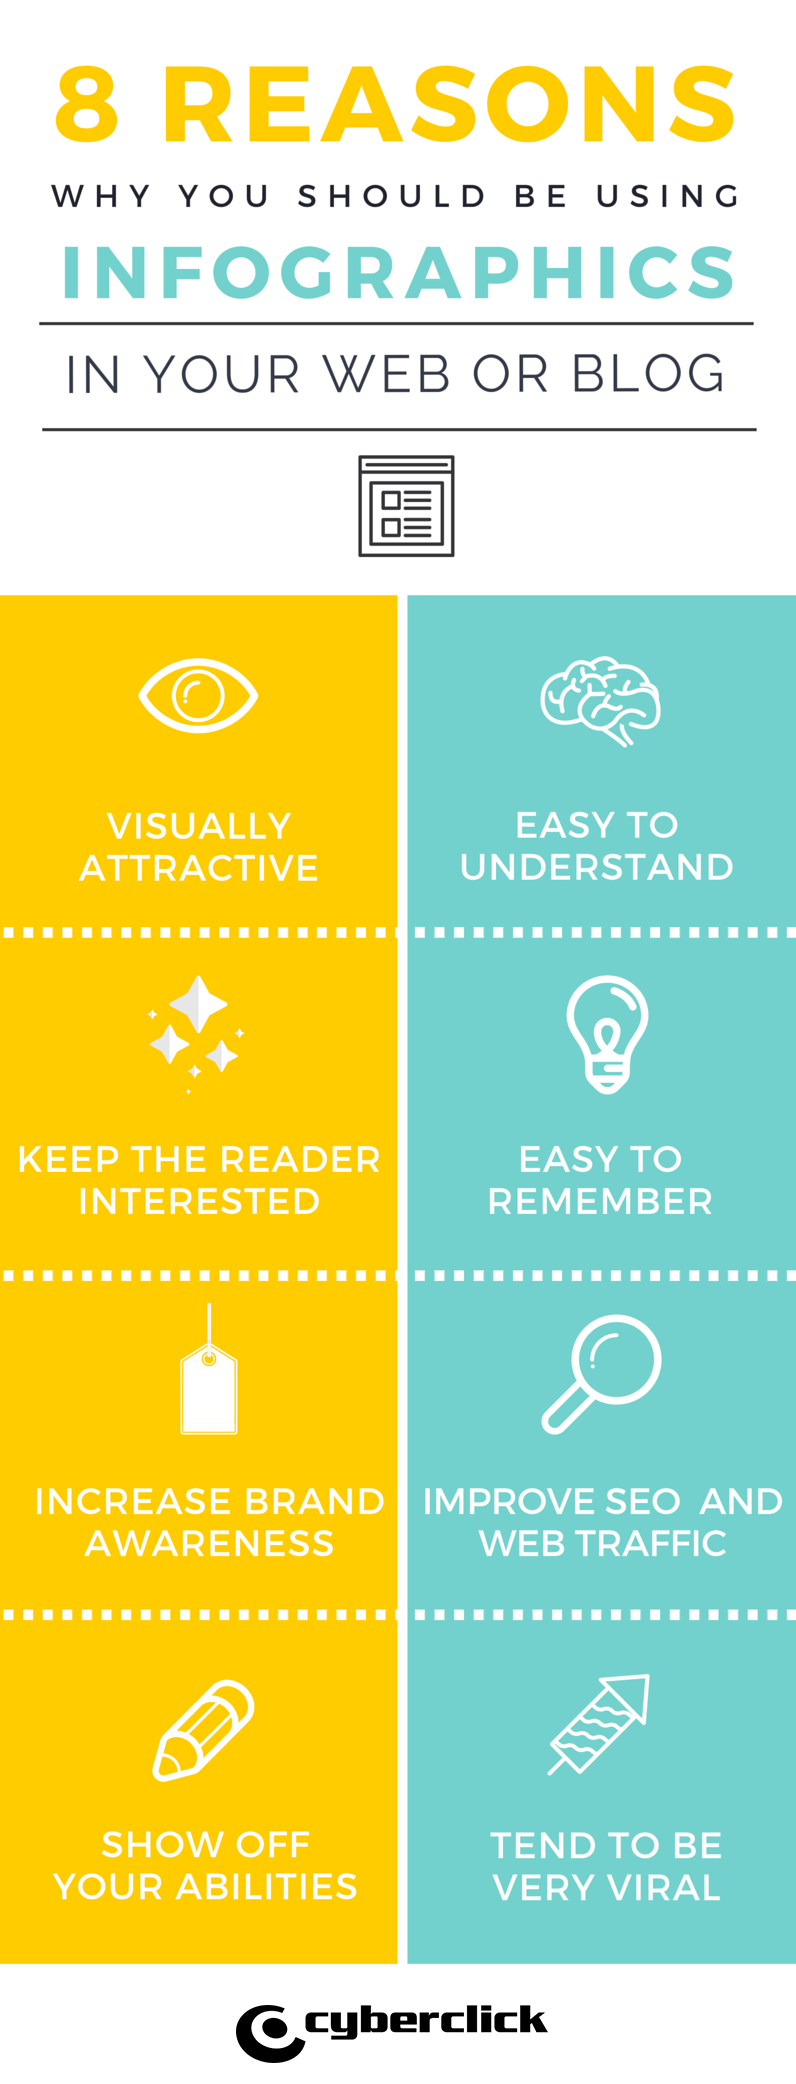 8_REASONS_WHY_YOU_SHOULD_BE_USING_INFOGRAPHICS